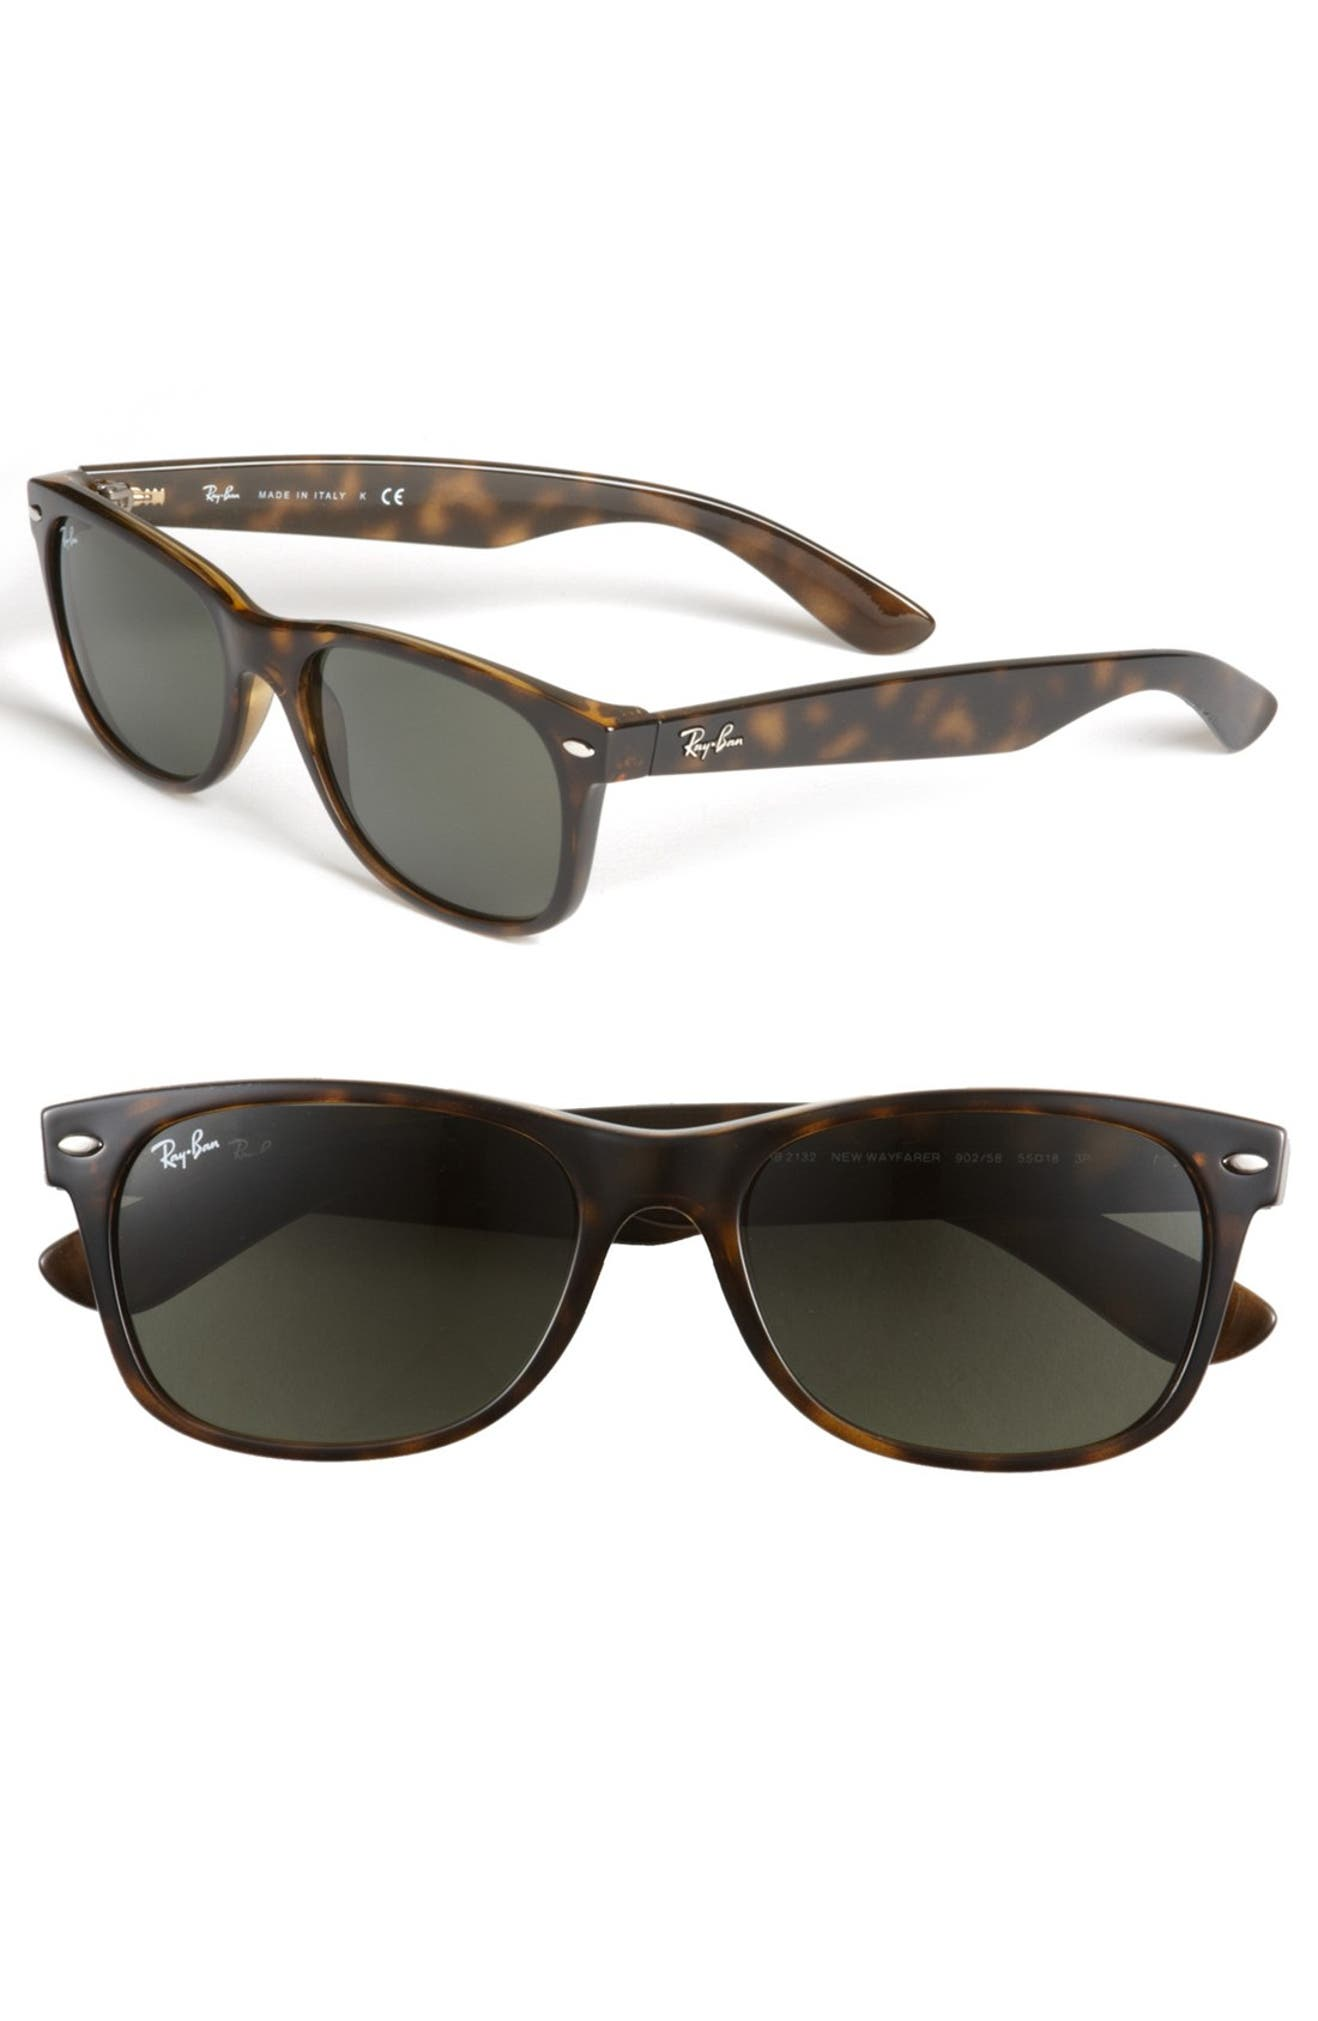 39bd52ad74 Ray-Ban  New Wayfarer  55mm Sunglasses